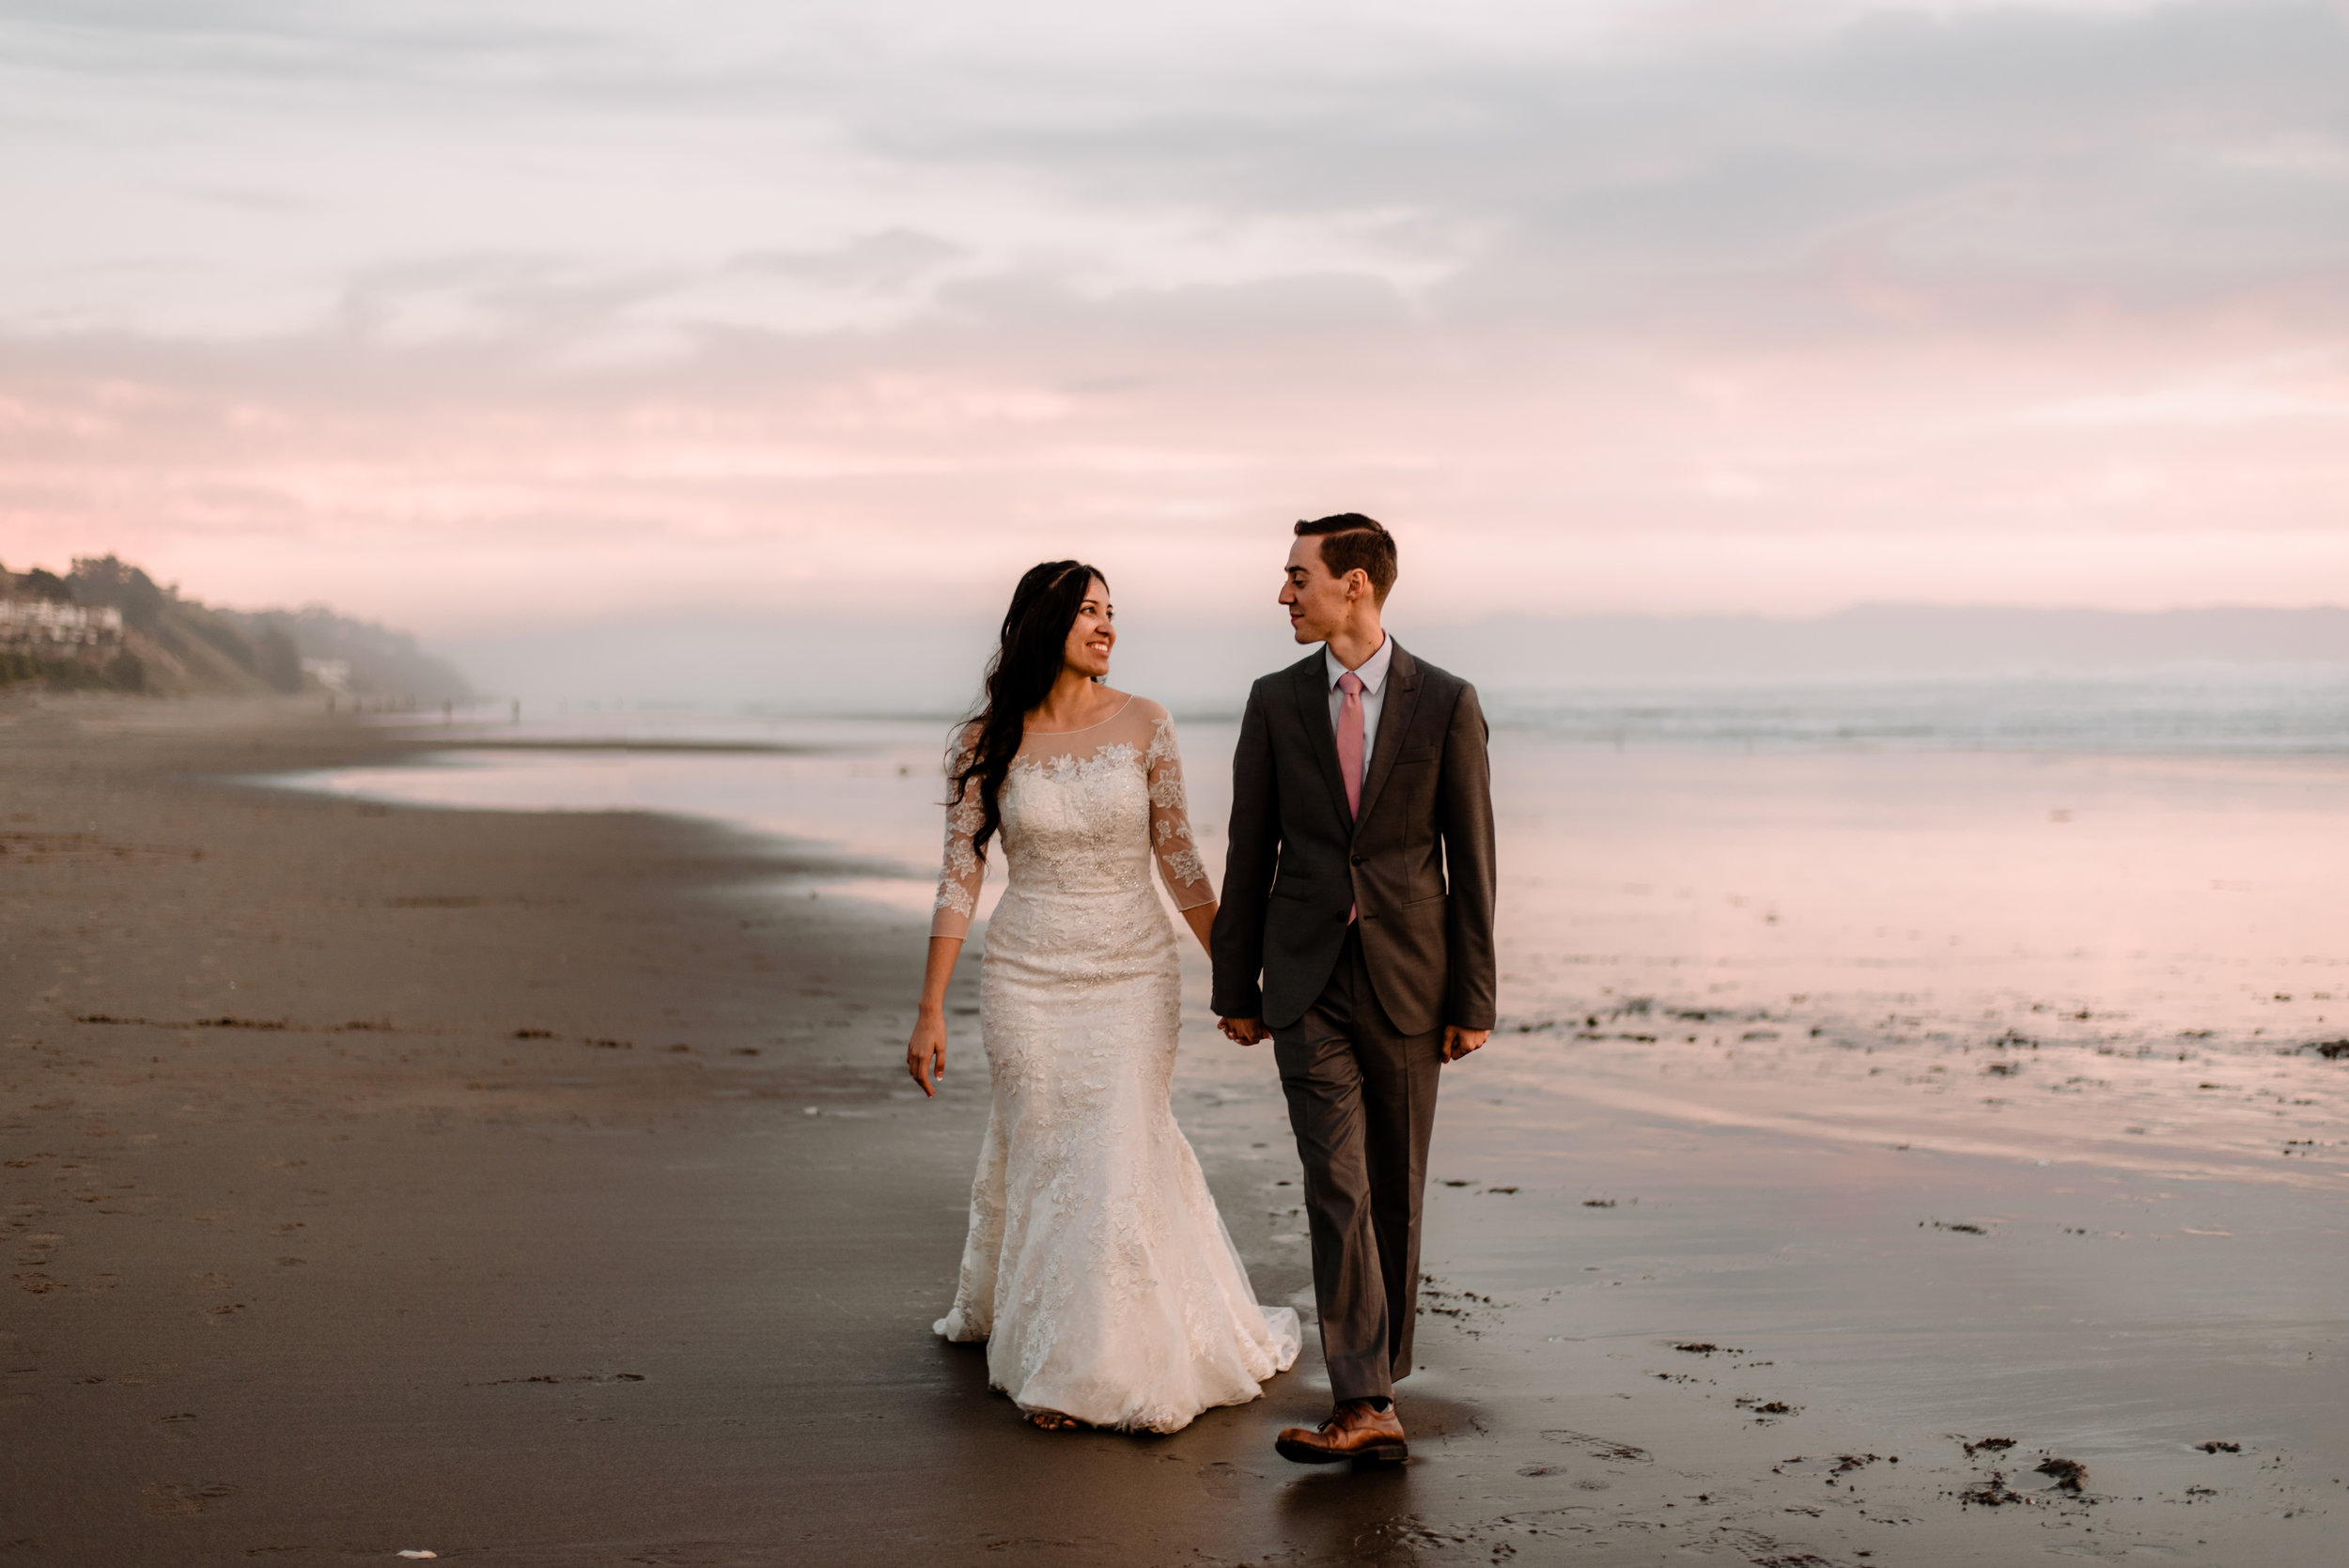 ELOPEMENTS & INTIMATE WEDDINGS - Prices start at 2,100 USDWe also offer full package deals with travel or prints included. Get in touch for a custom quote